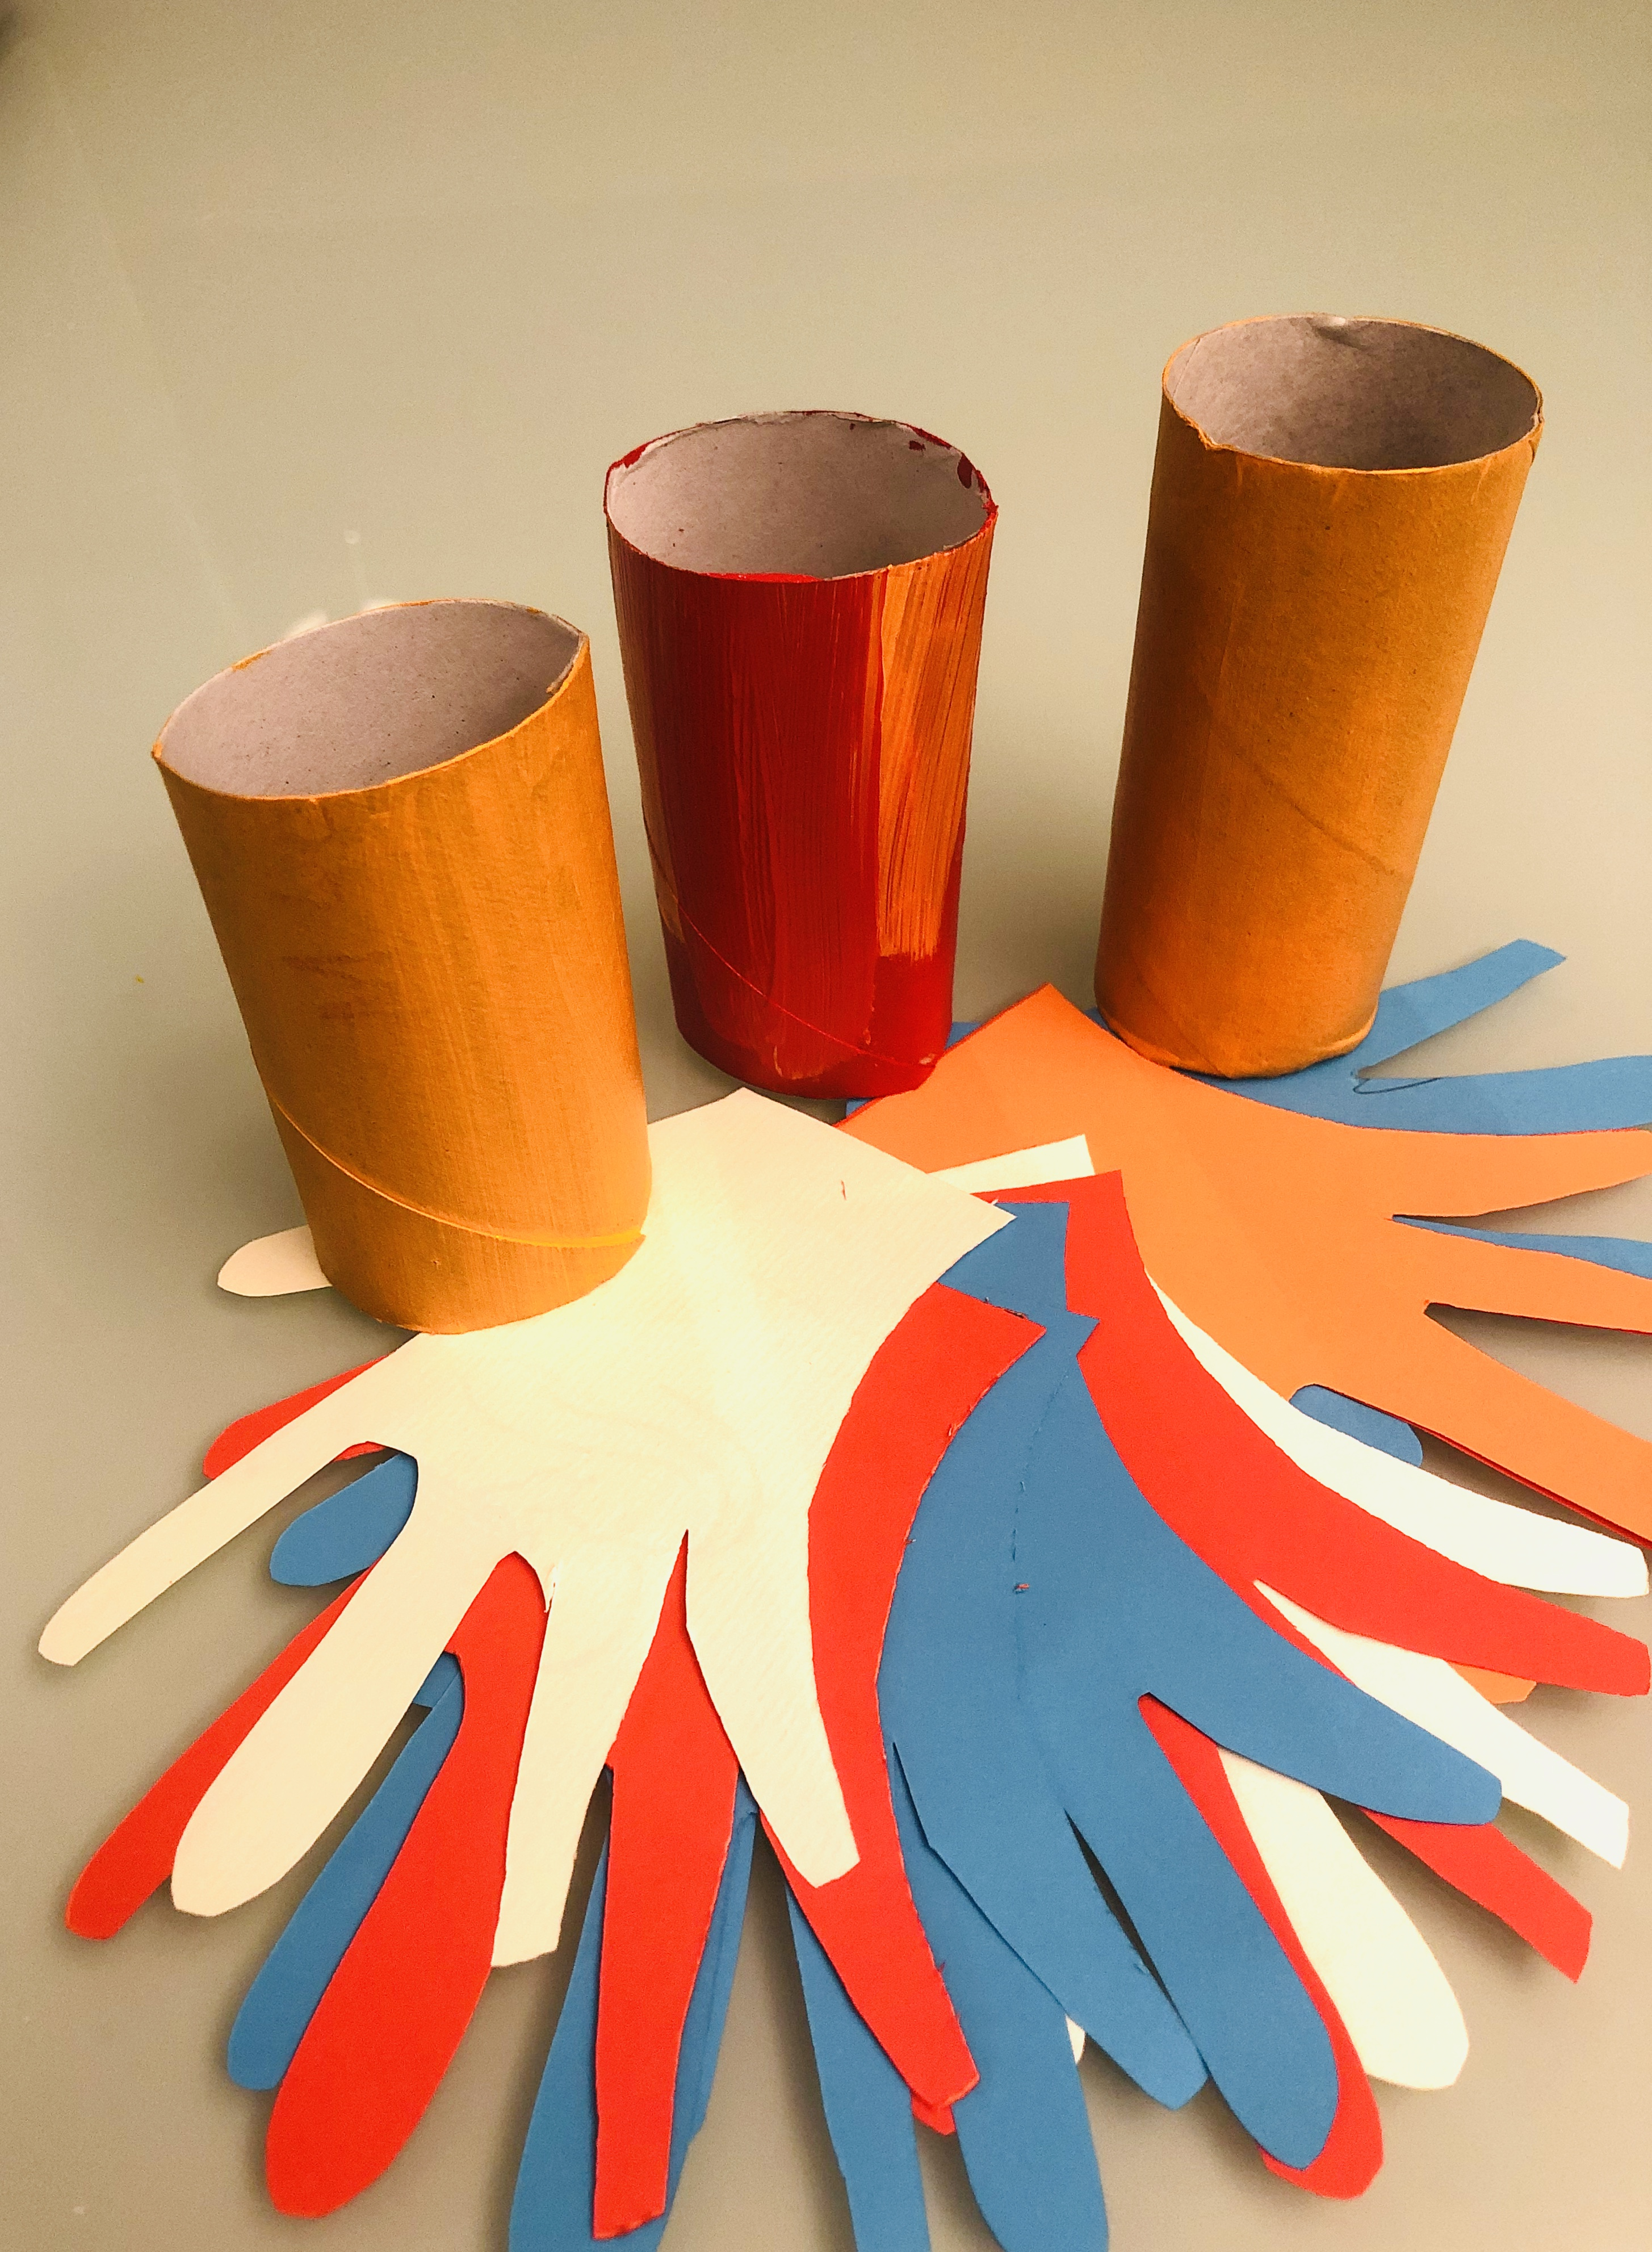 toilet paper rolls and hand cut-outs for the parrots